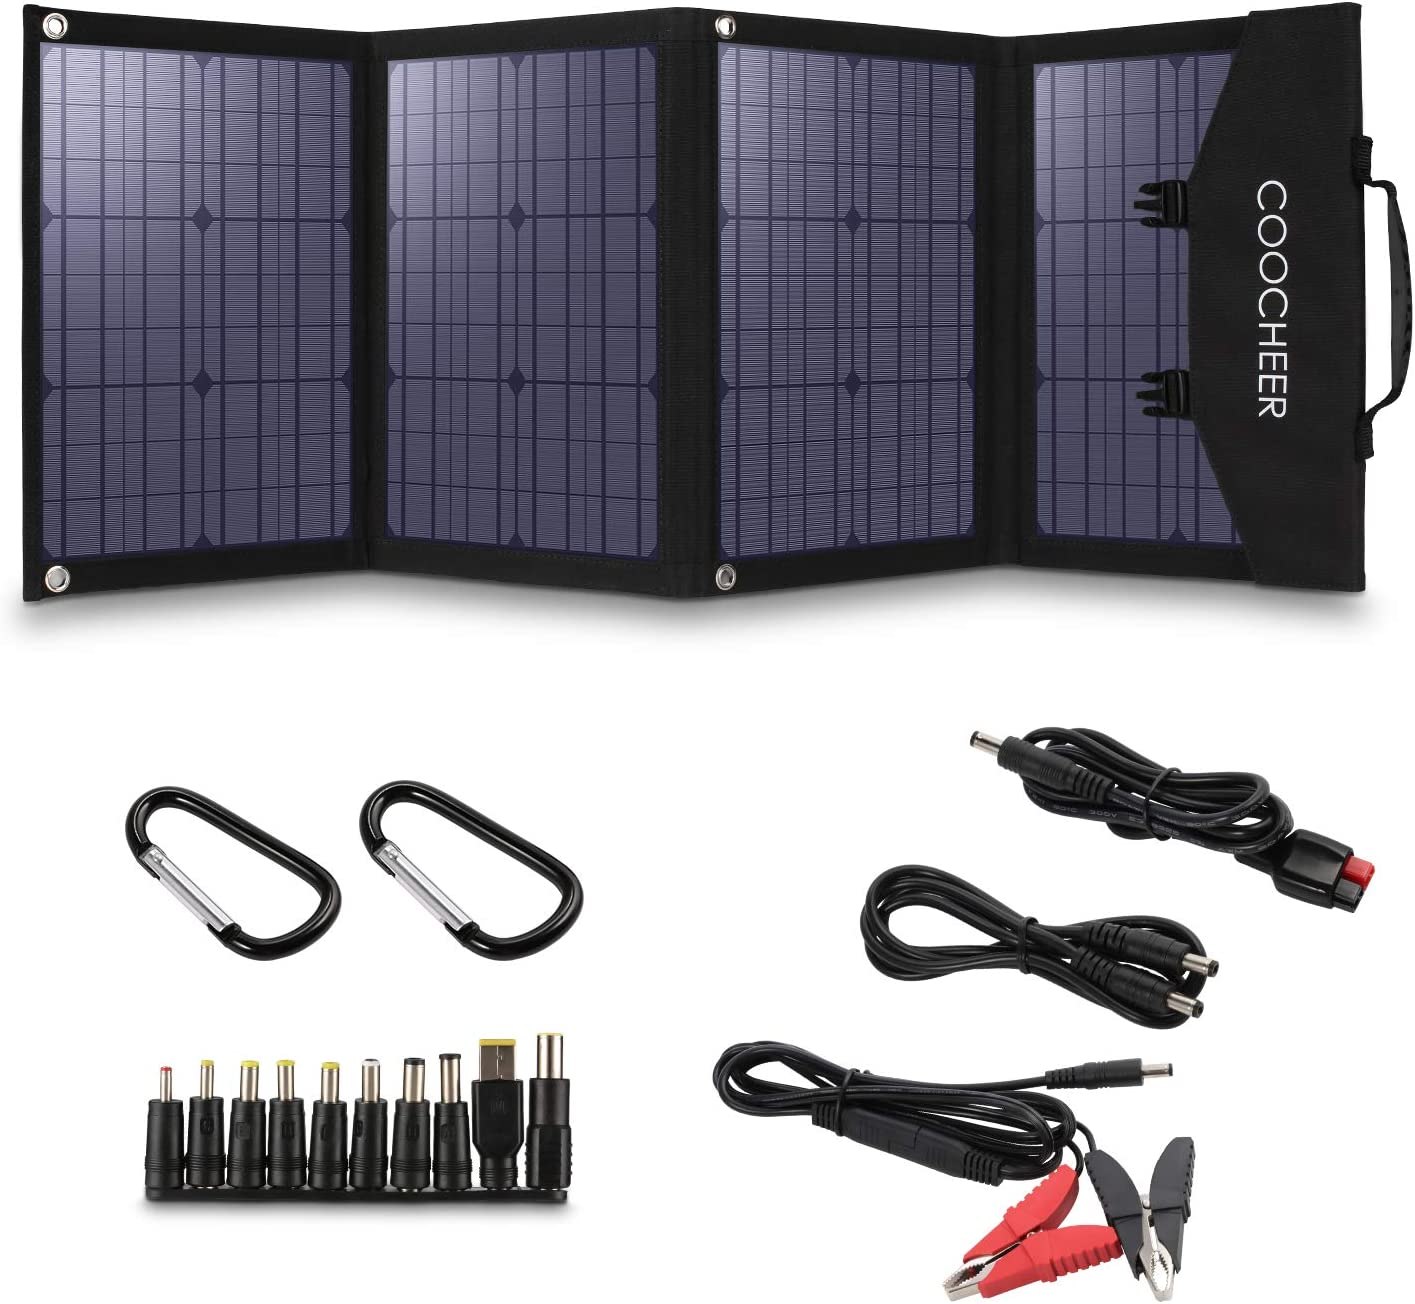 COOCHEER Solar Panel 120W, Portable Solar Panel Charger for Portable Generator/Power Station/USB Devices/Cars/Yacht with 2 USB Ports & 1 DV Port, Suitable for Camping Van